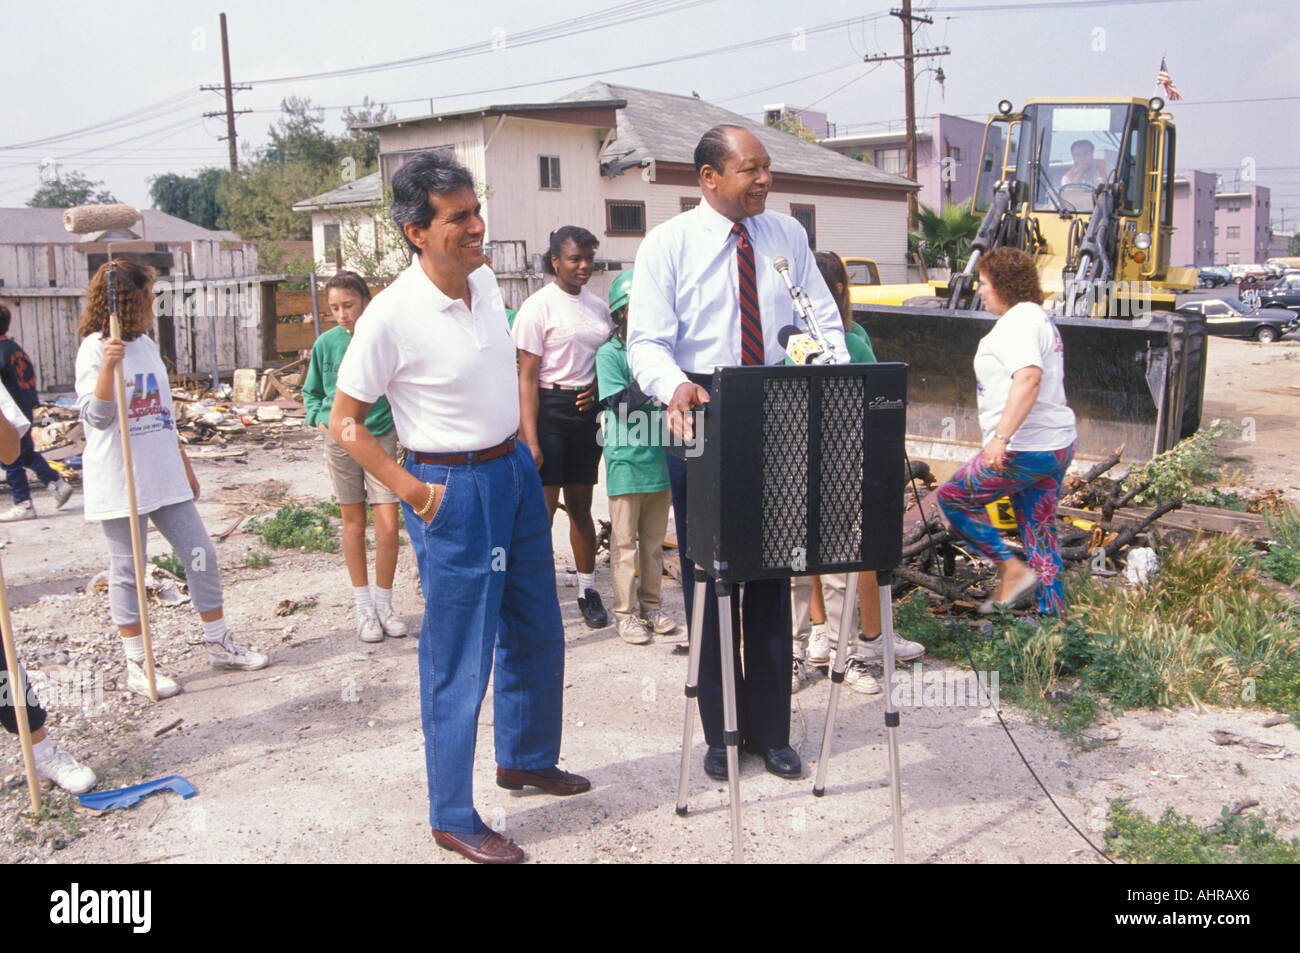 Mayor Tom Bradley overseeing urban cleanup efforts on Earth Day - Stock Image